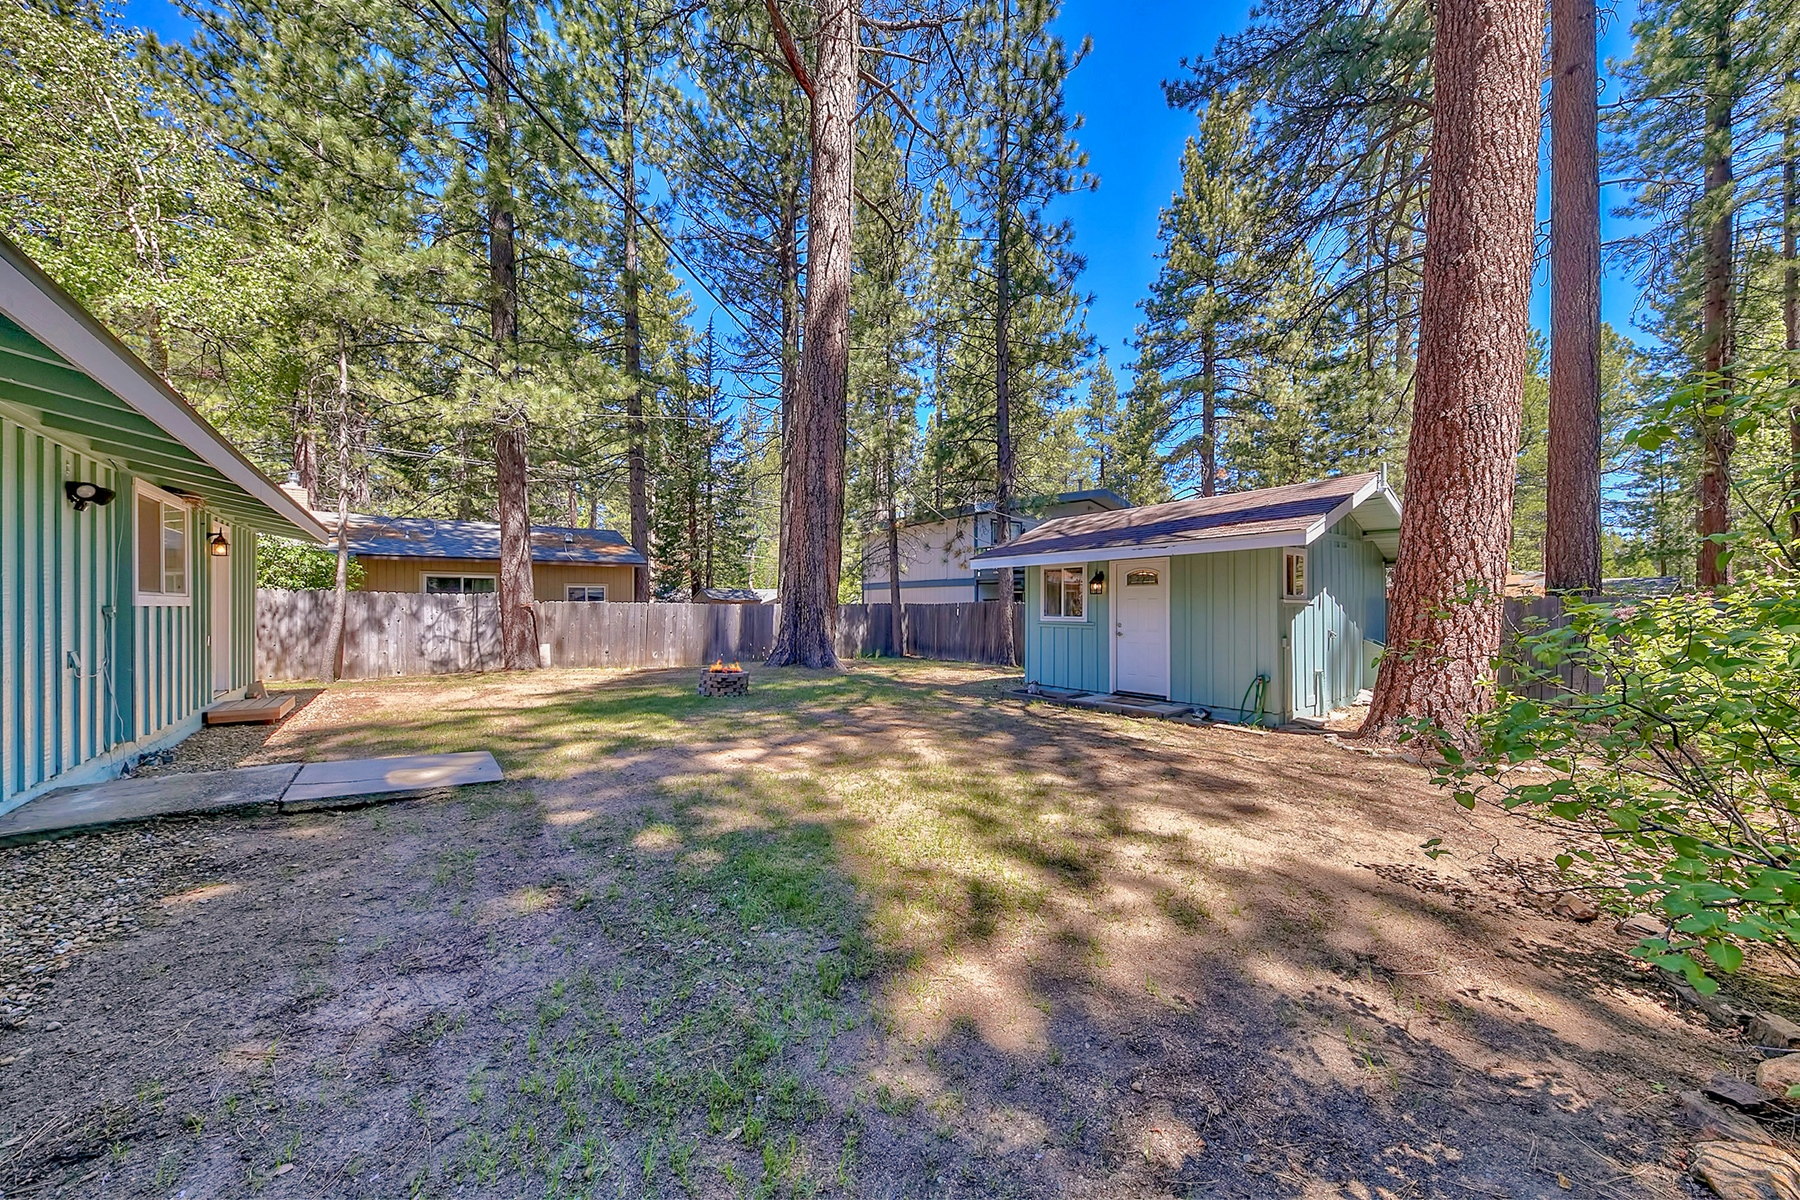 Additional photo for property listing at 813 Tahoe Island Drive, South Lake Tahoe, CA 813 Tahoe Island Drive South Lake Tahoe, California 96150 United States